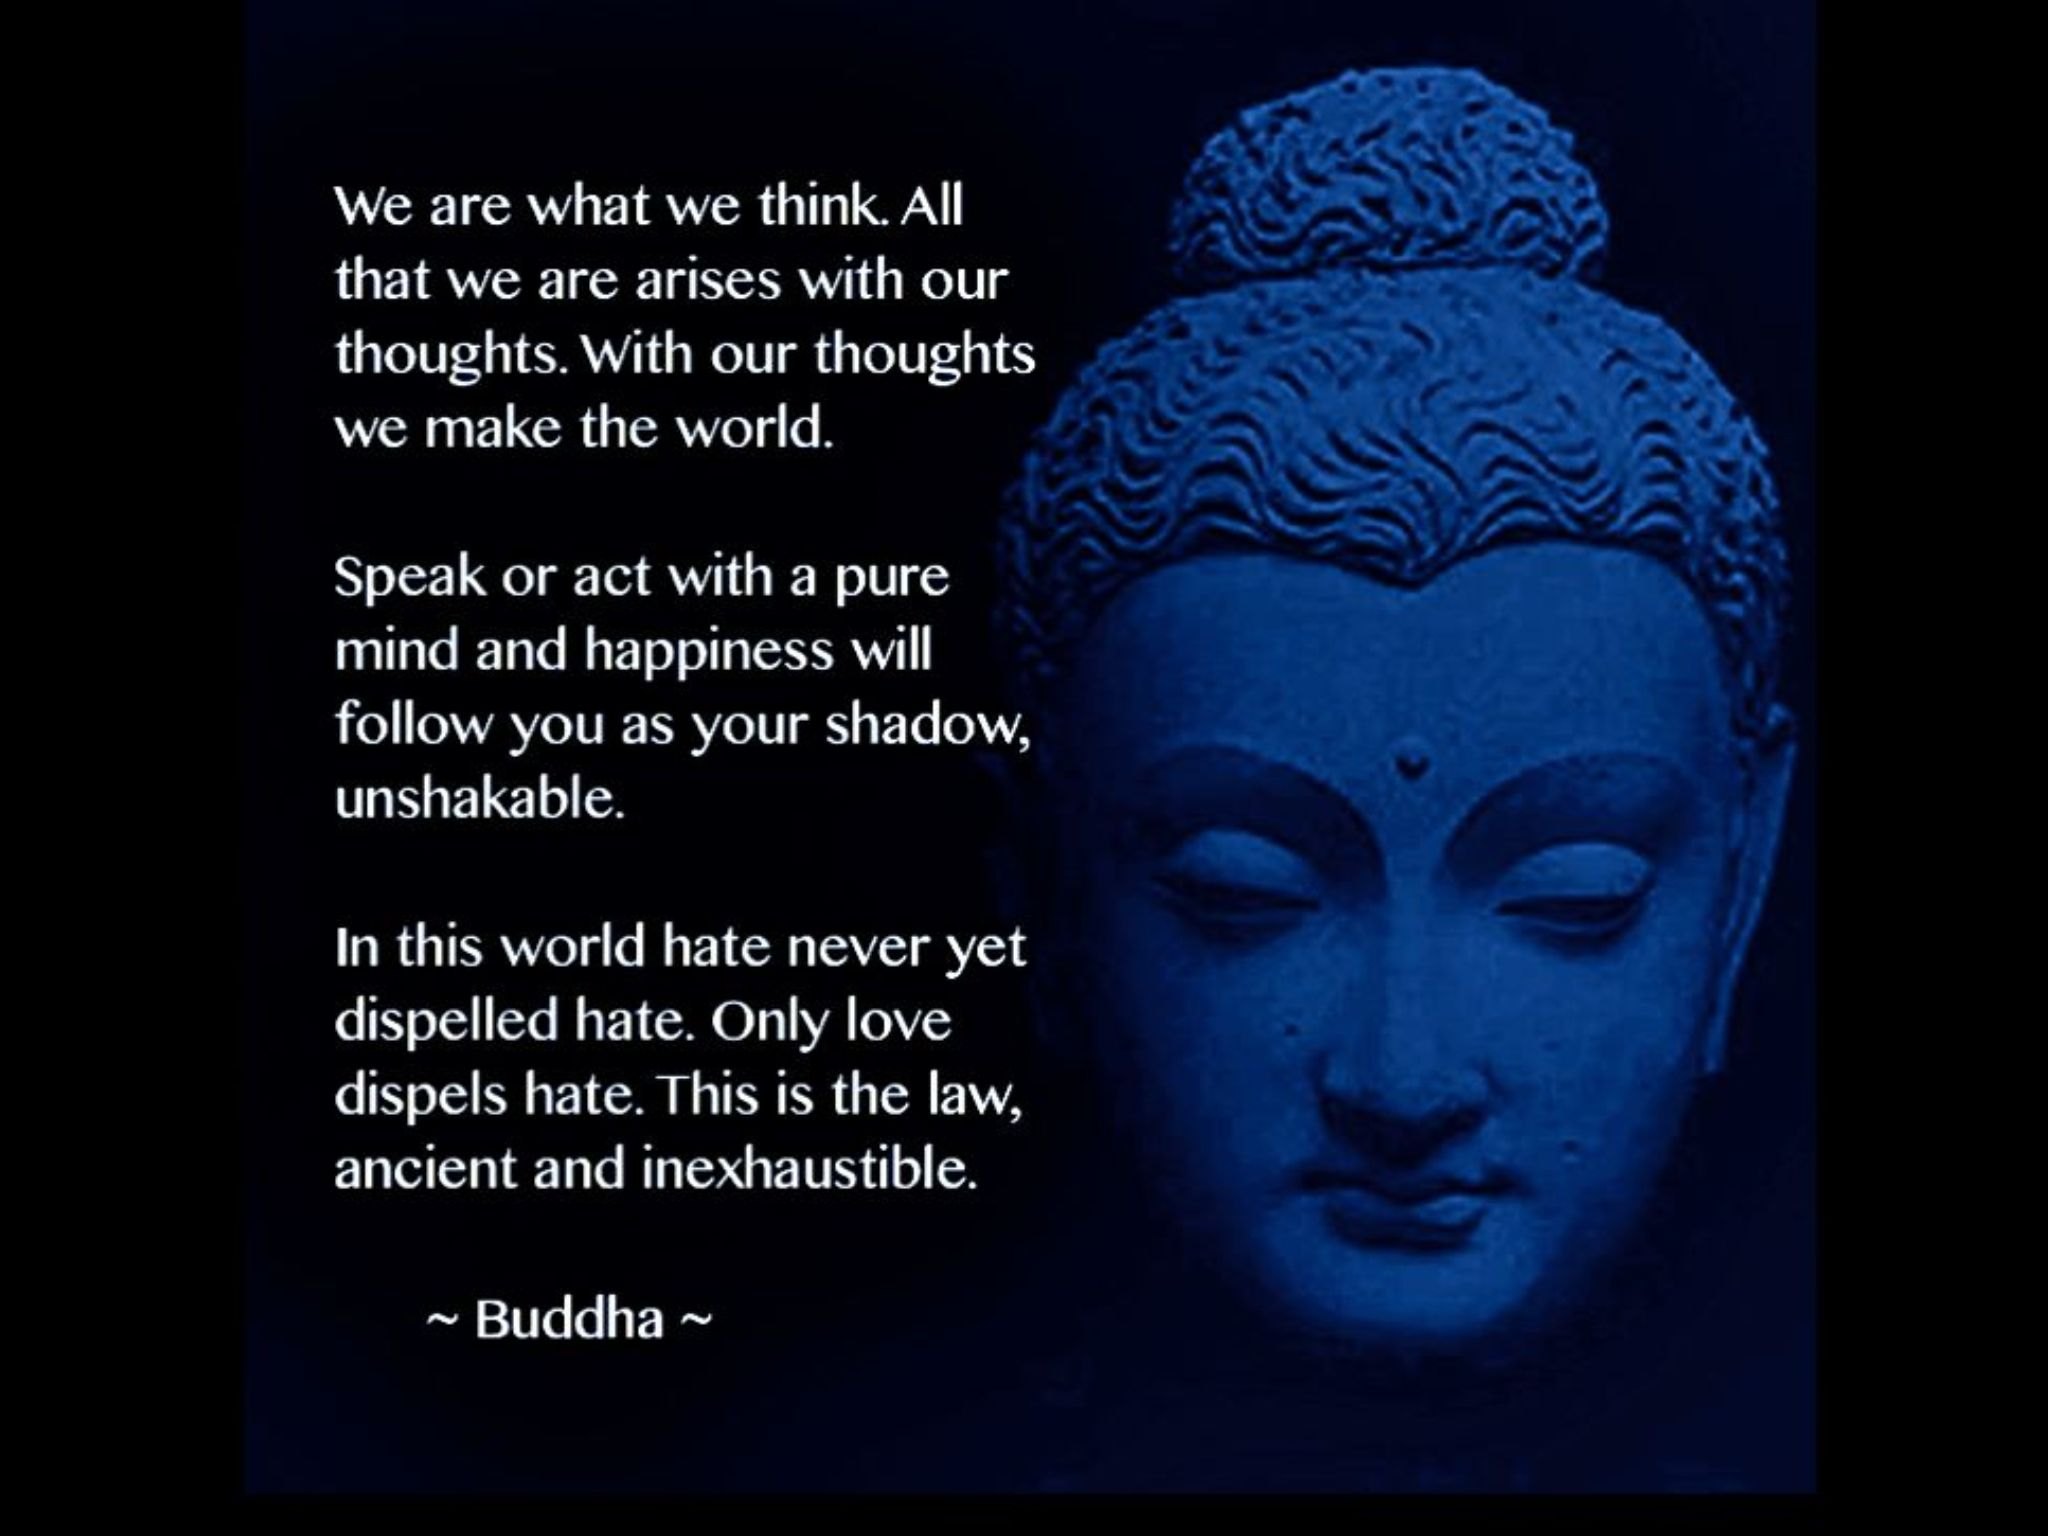 Lord Buddha. Wisdom. We are what we think. Lord Buddha